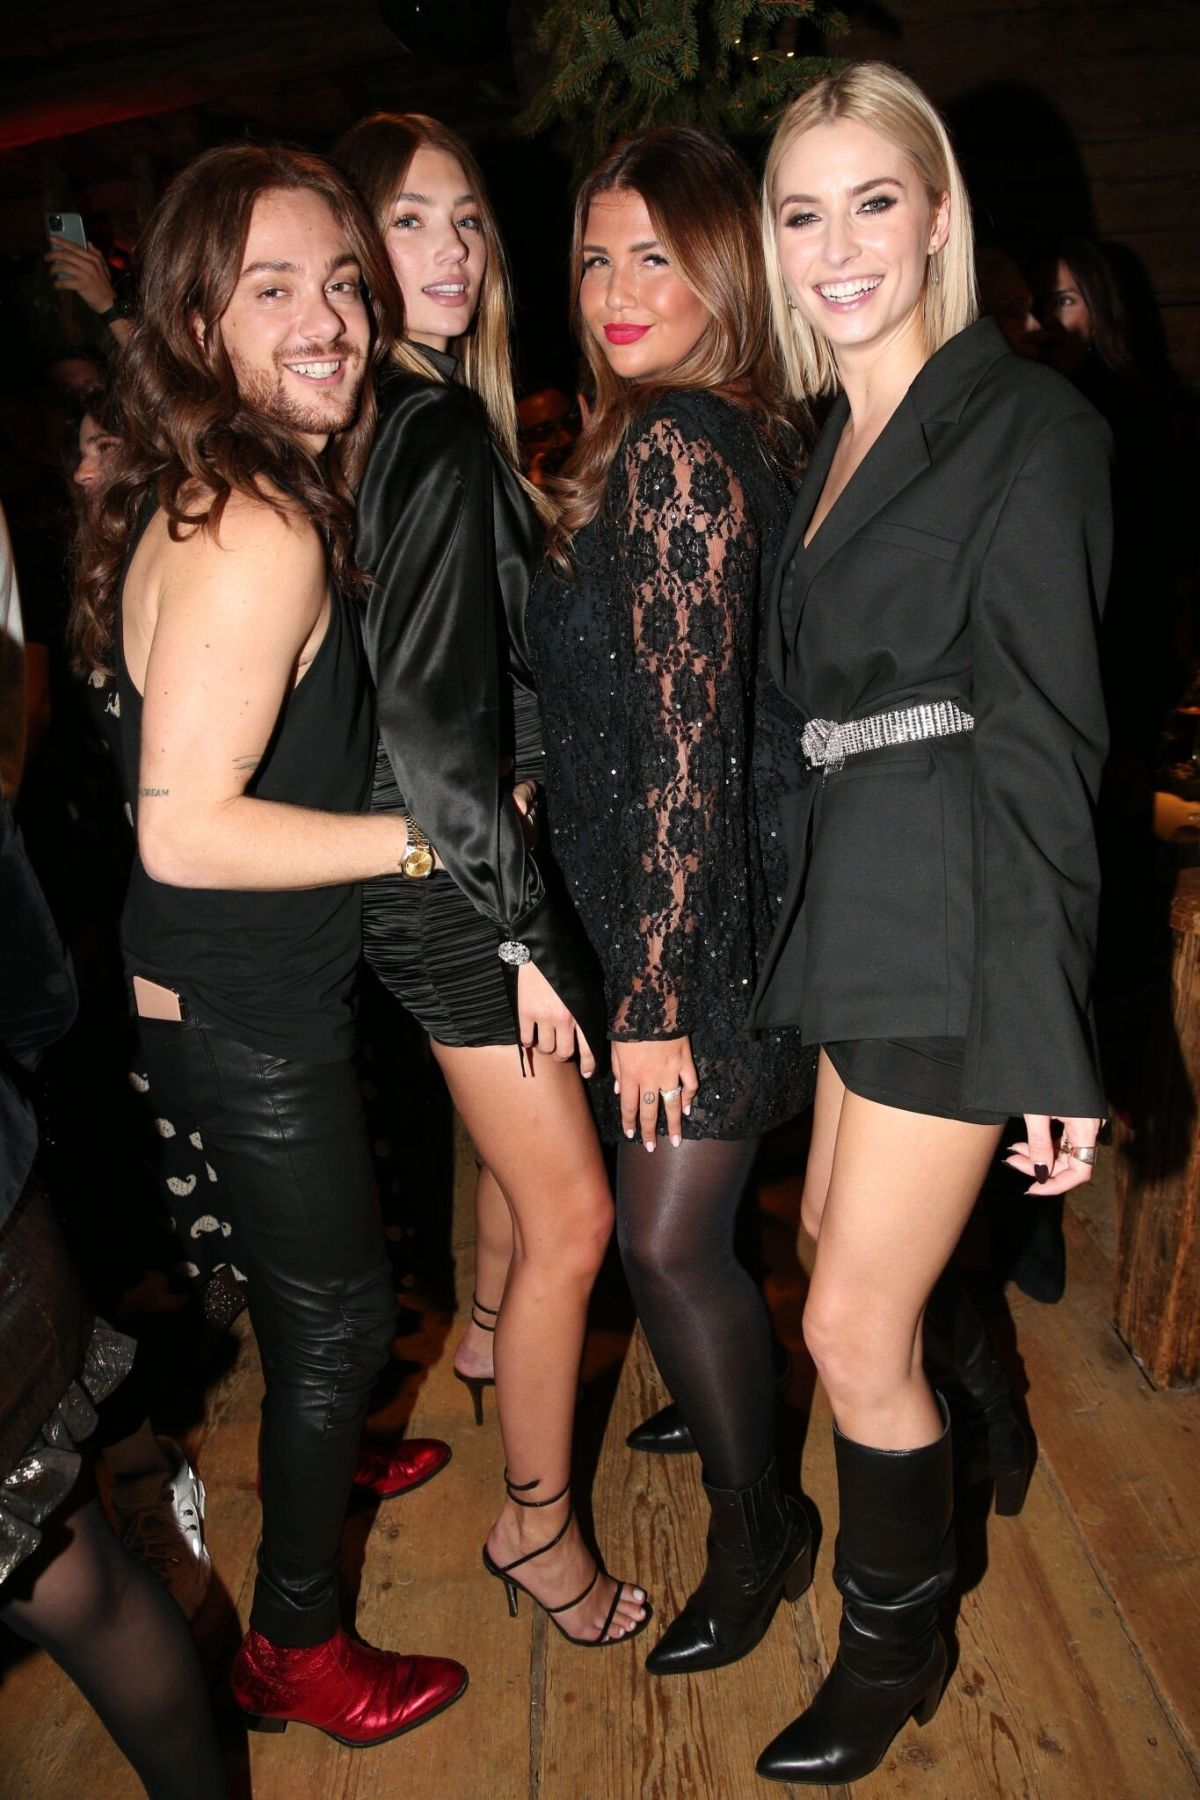 Lorena Rae And Lena Gercke At Christmas Dinner And Party 11